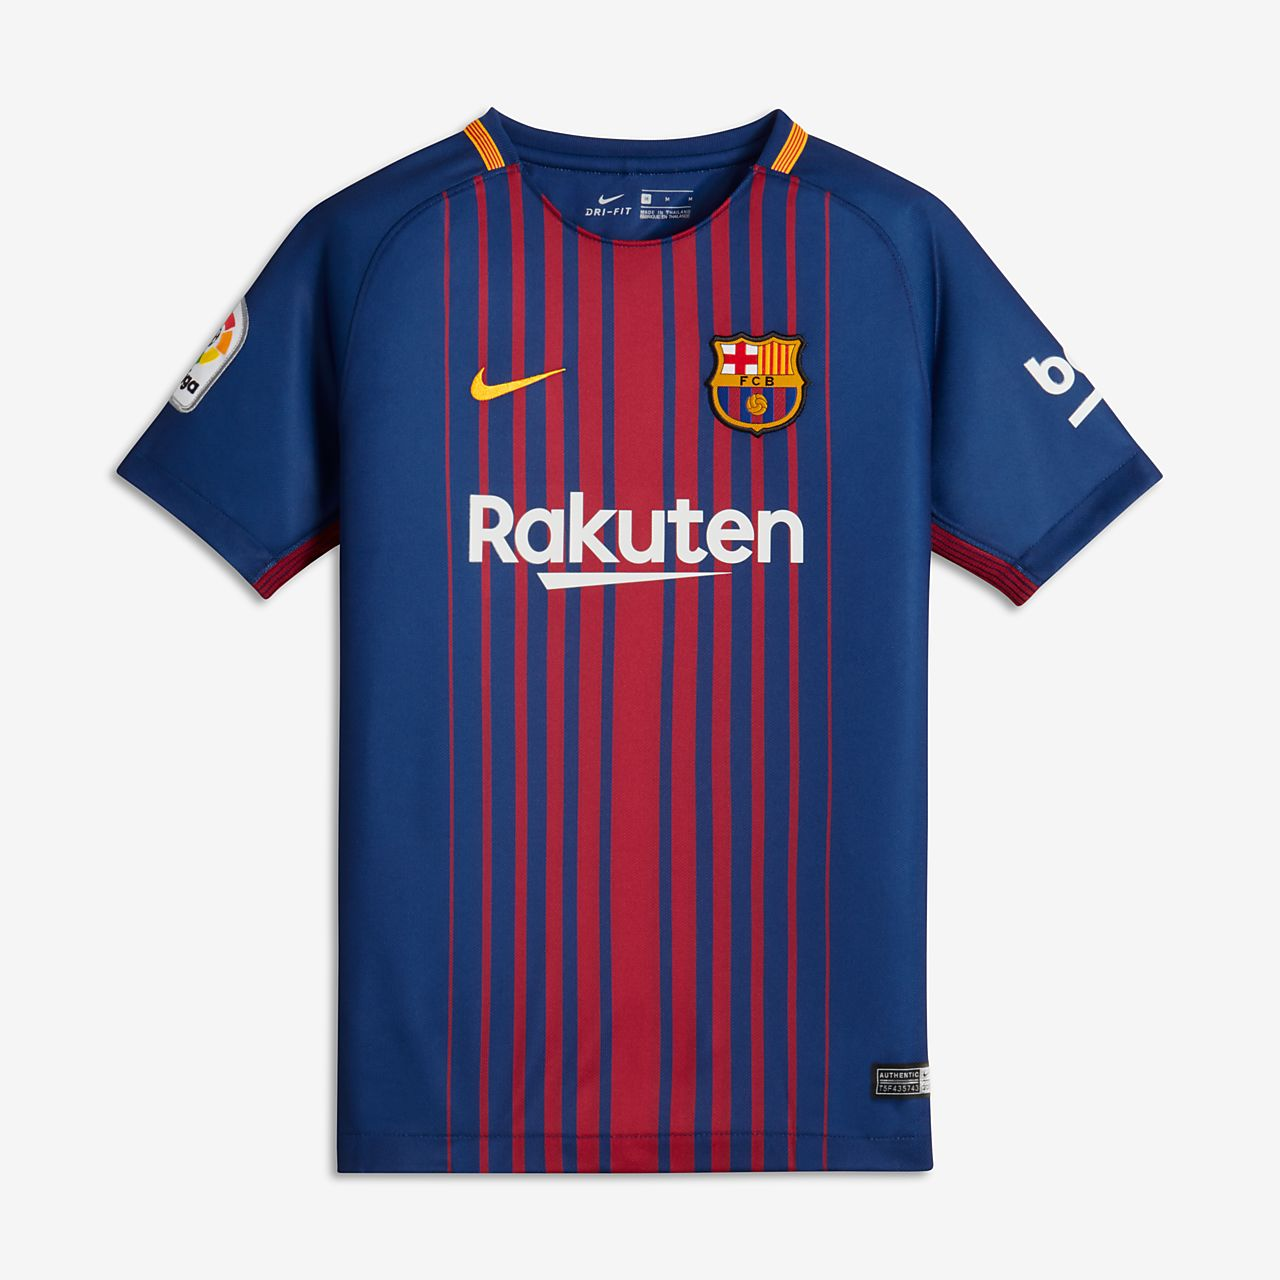 low priced e48a9 b5652 2017/18 FC Barcelona Home Older Kids' Football Shirt